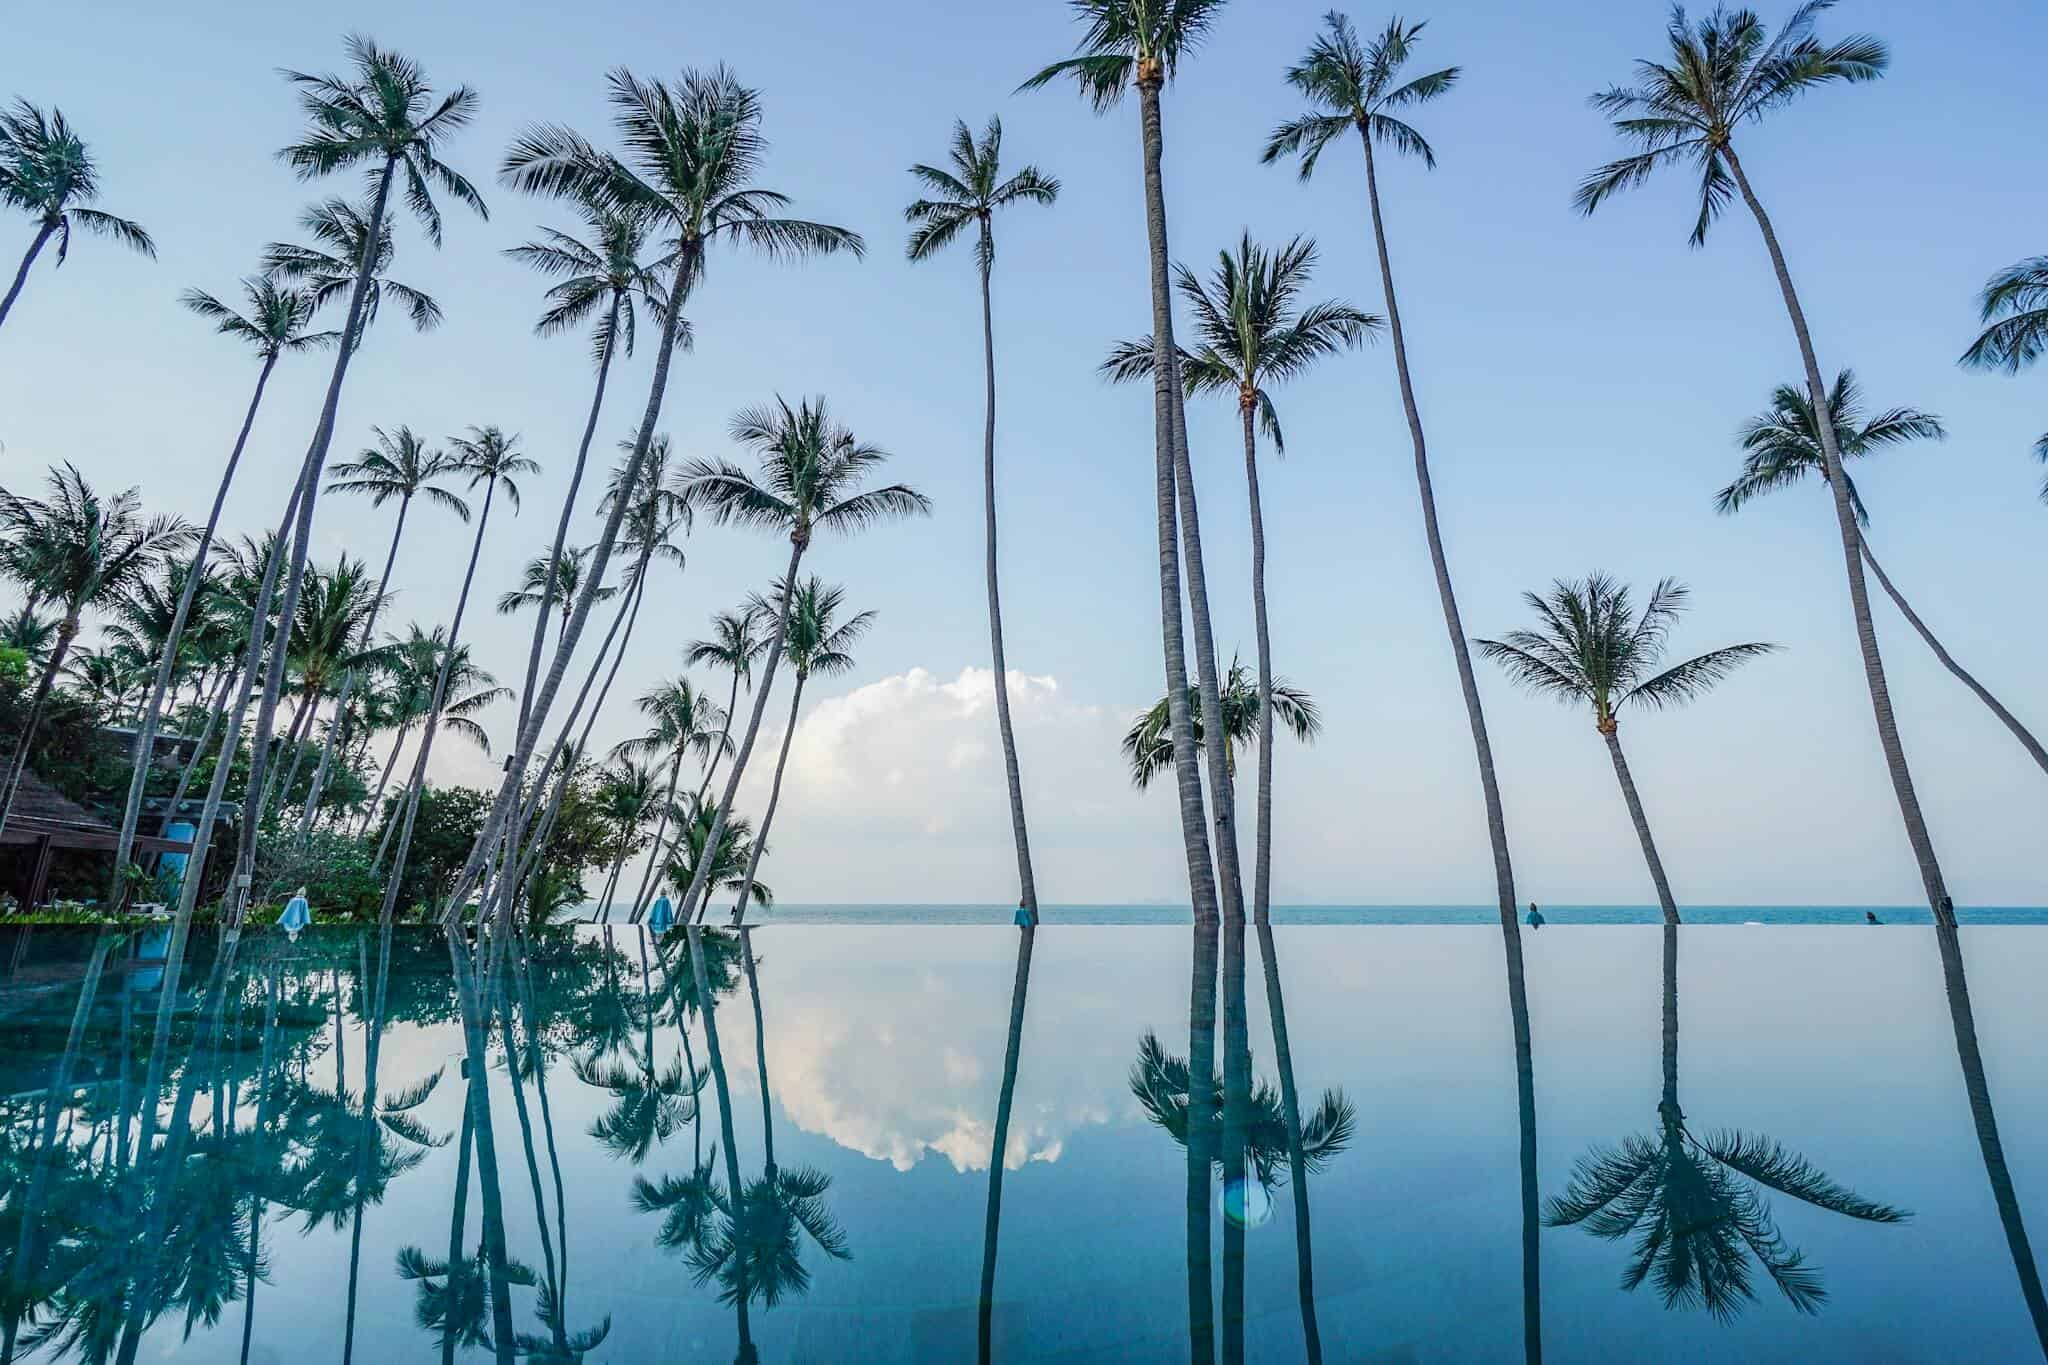 Things to do in Koh Samui – My Highlights in Koh Samui